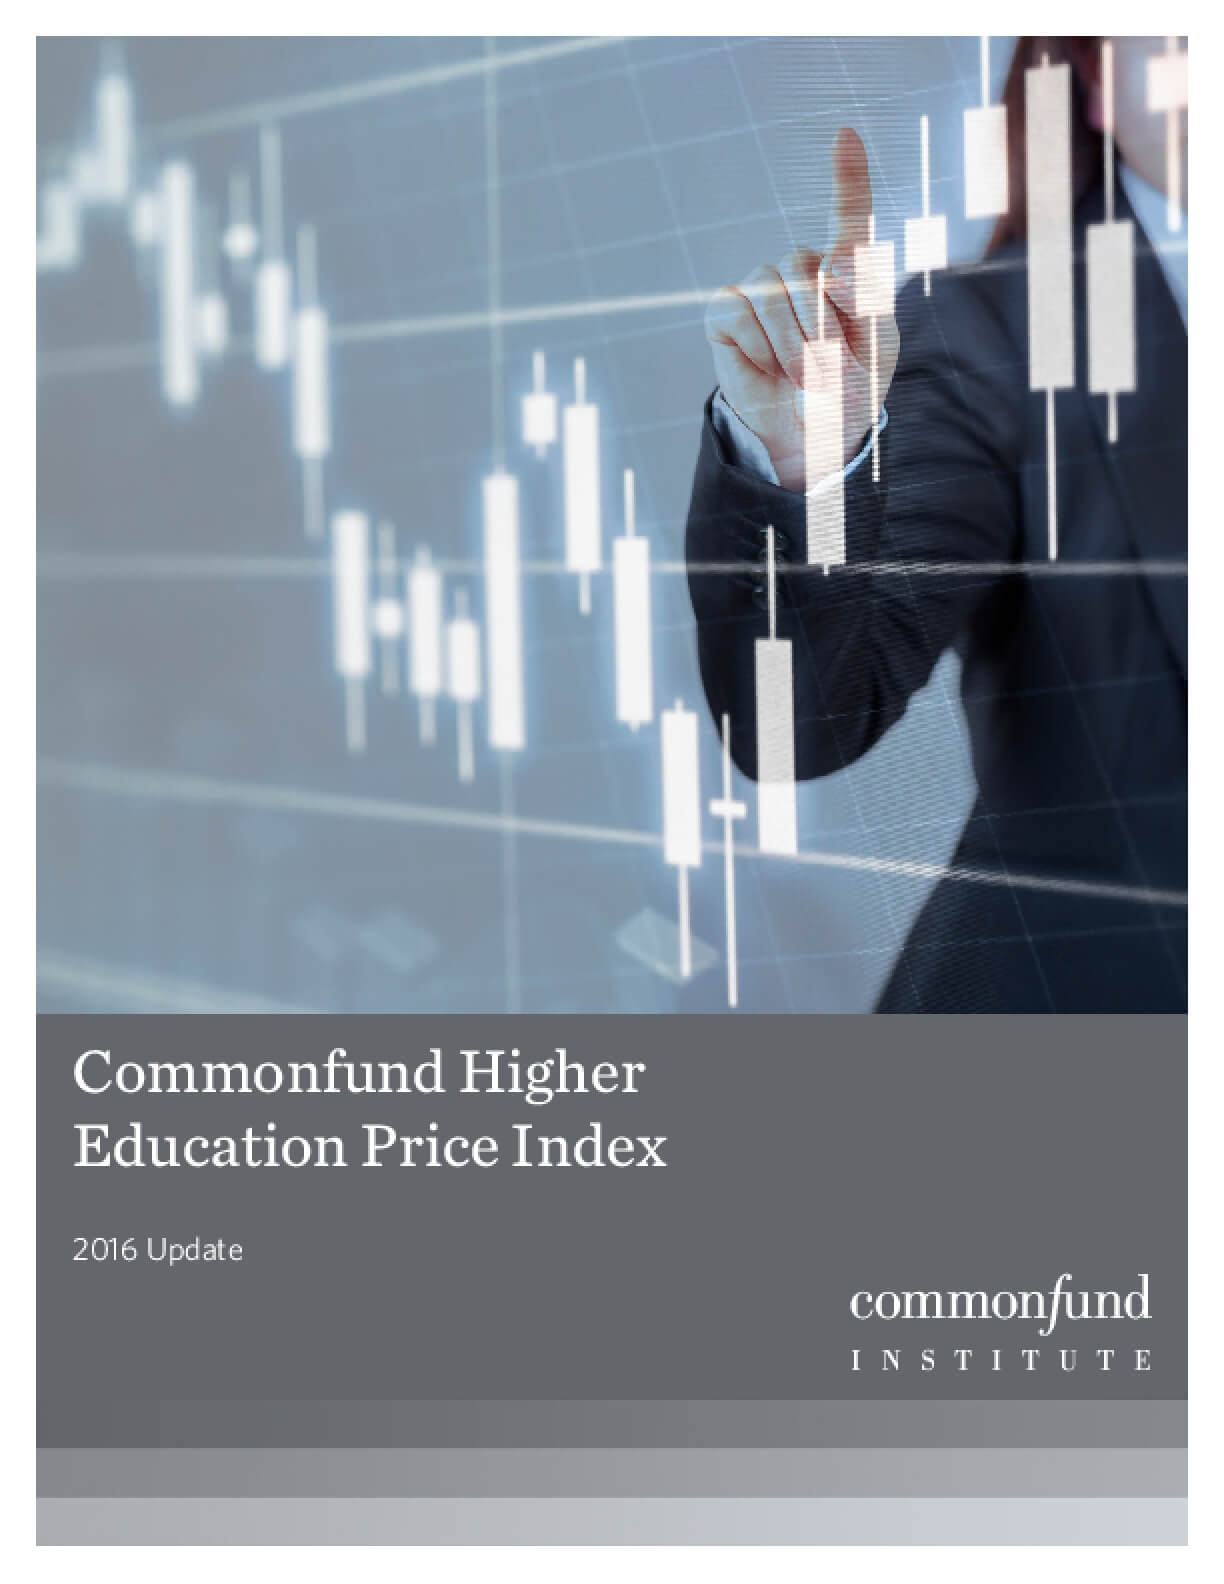 Commonfund Higher Education Price Index 2016 Update